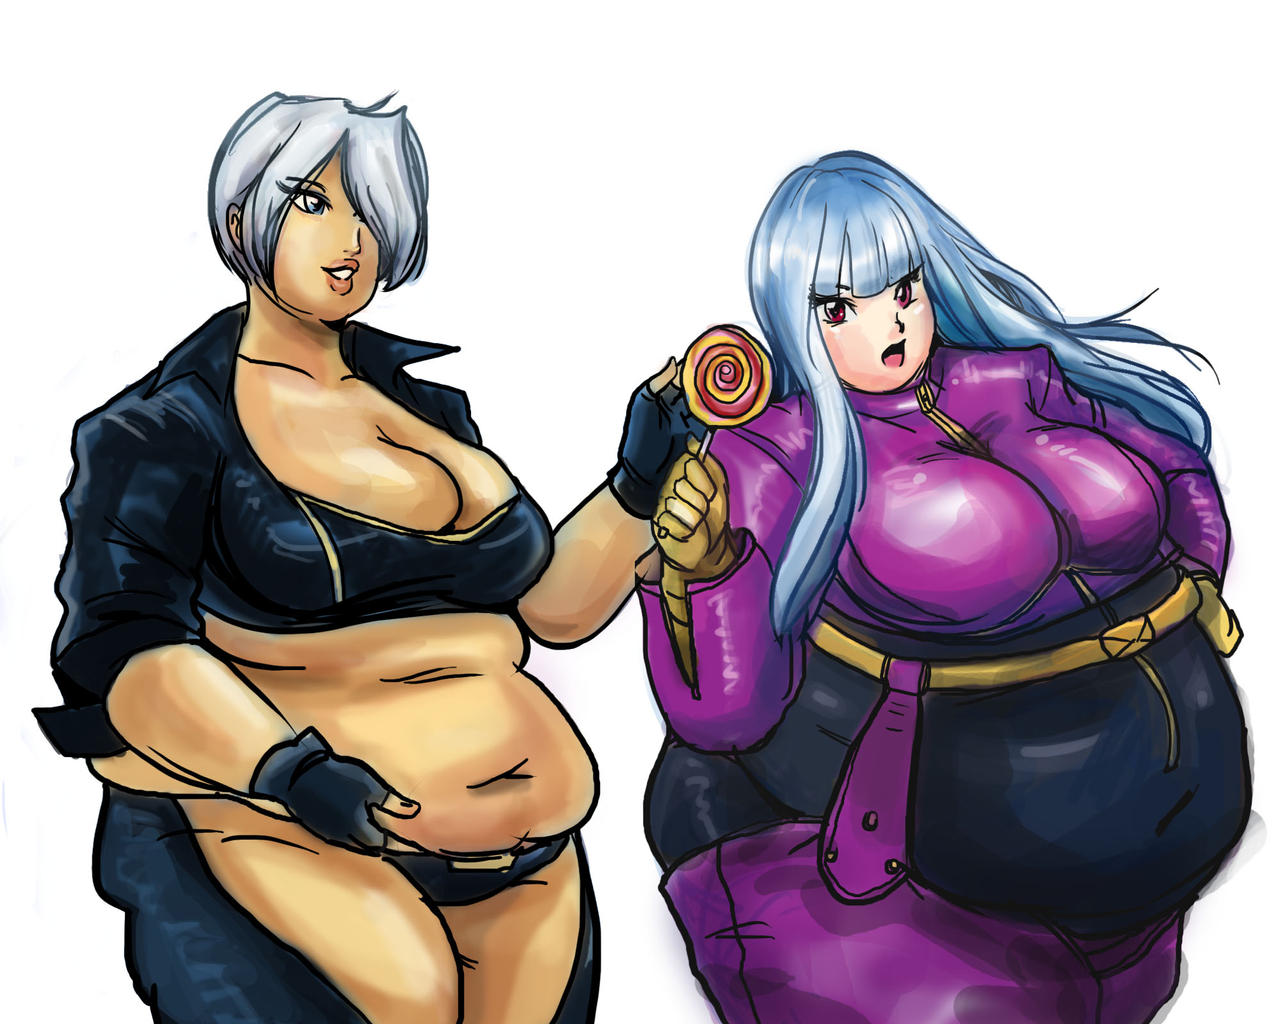 angel_kula_and_candy_by_theamericandream-d3a1q8f.jpg